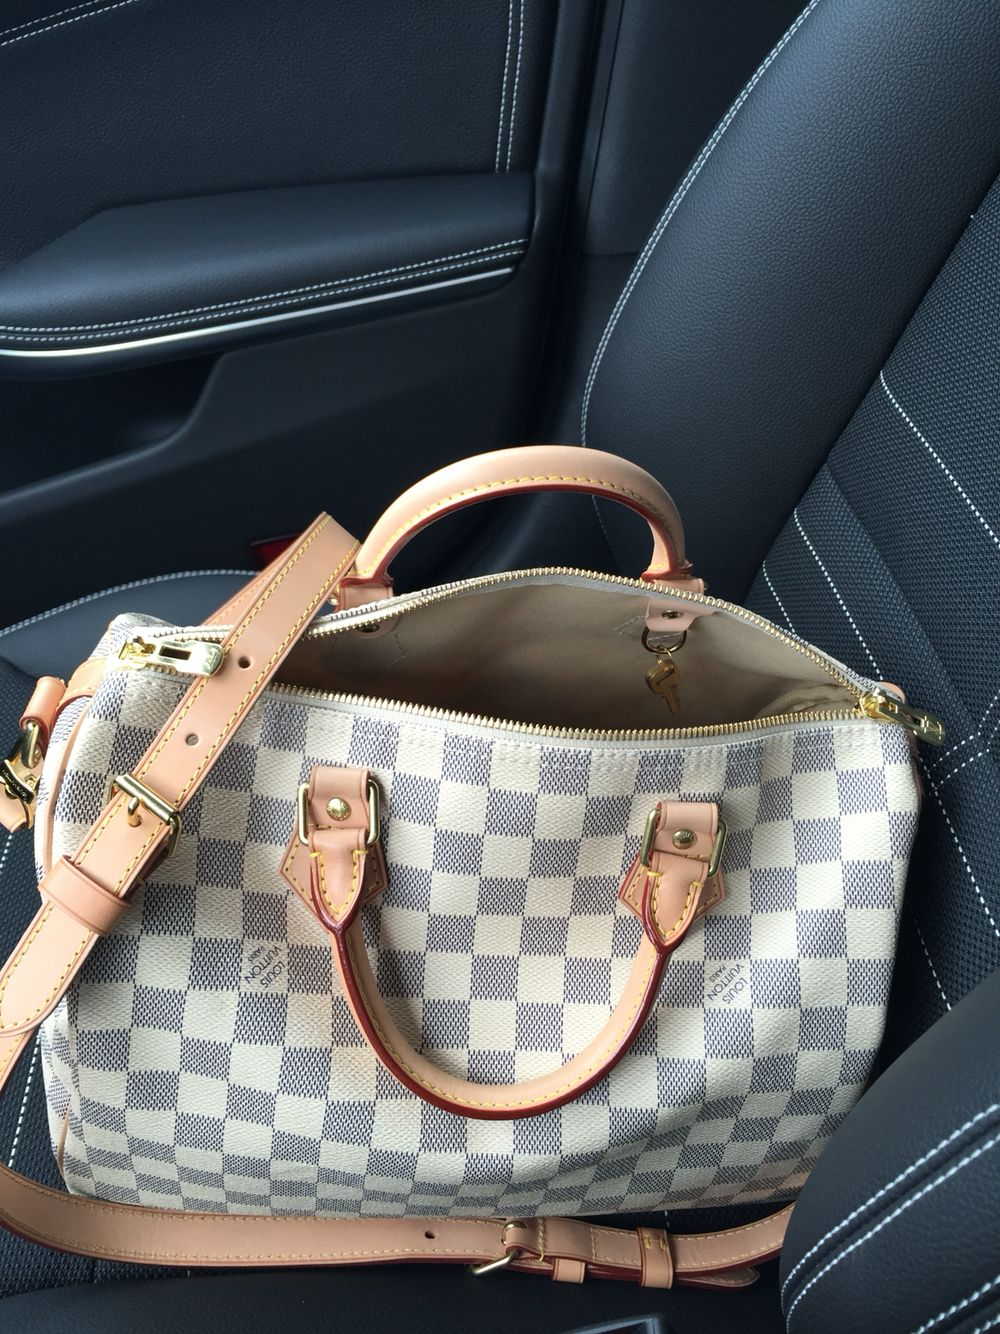 61b95c11513b Louis Vuitton Speedy B 30 Damier Azur❤ One of my next purchases on my Louis  list!